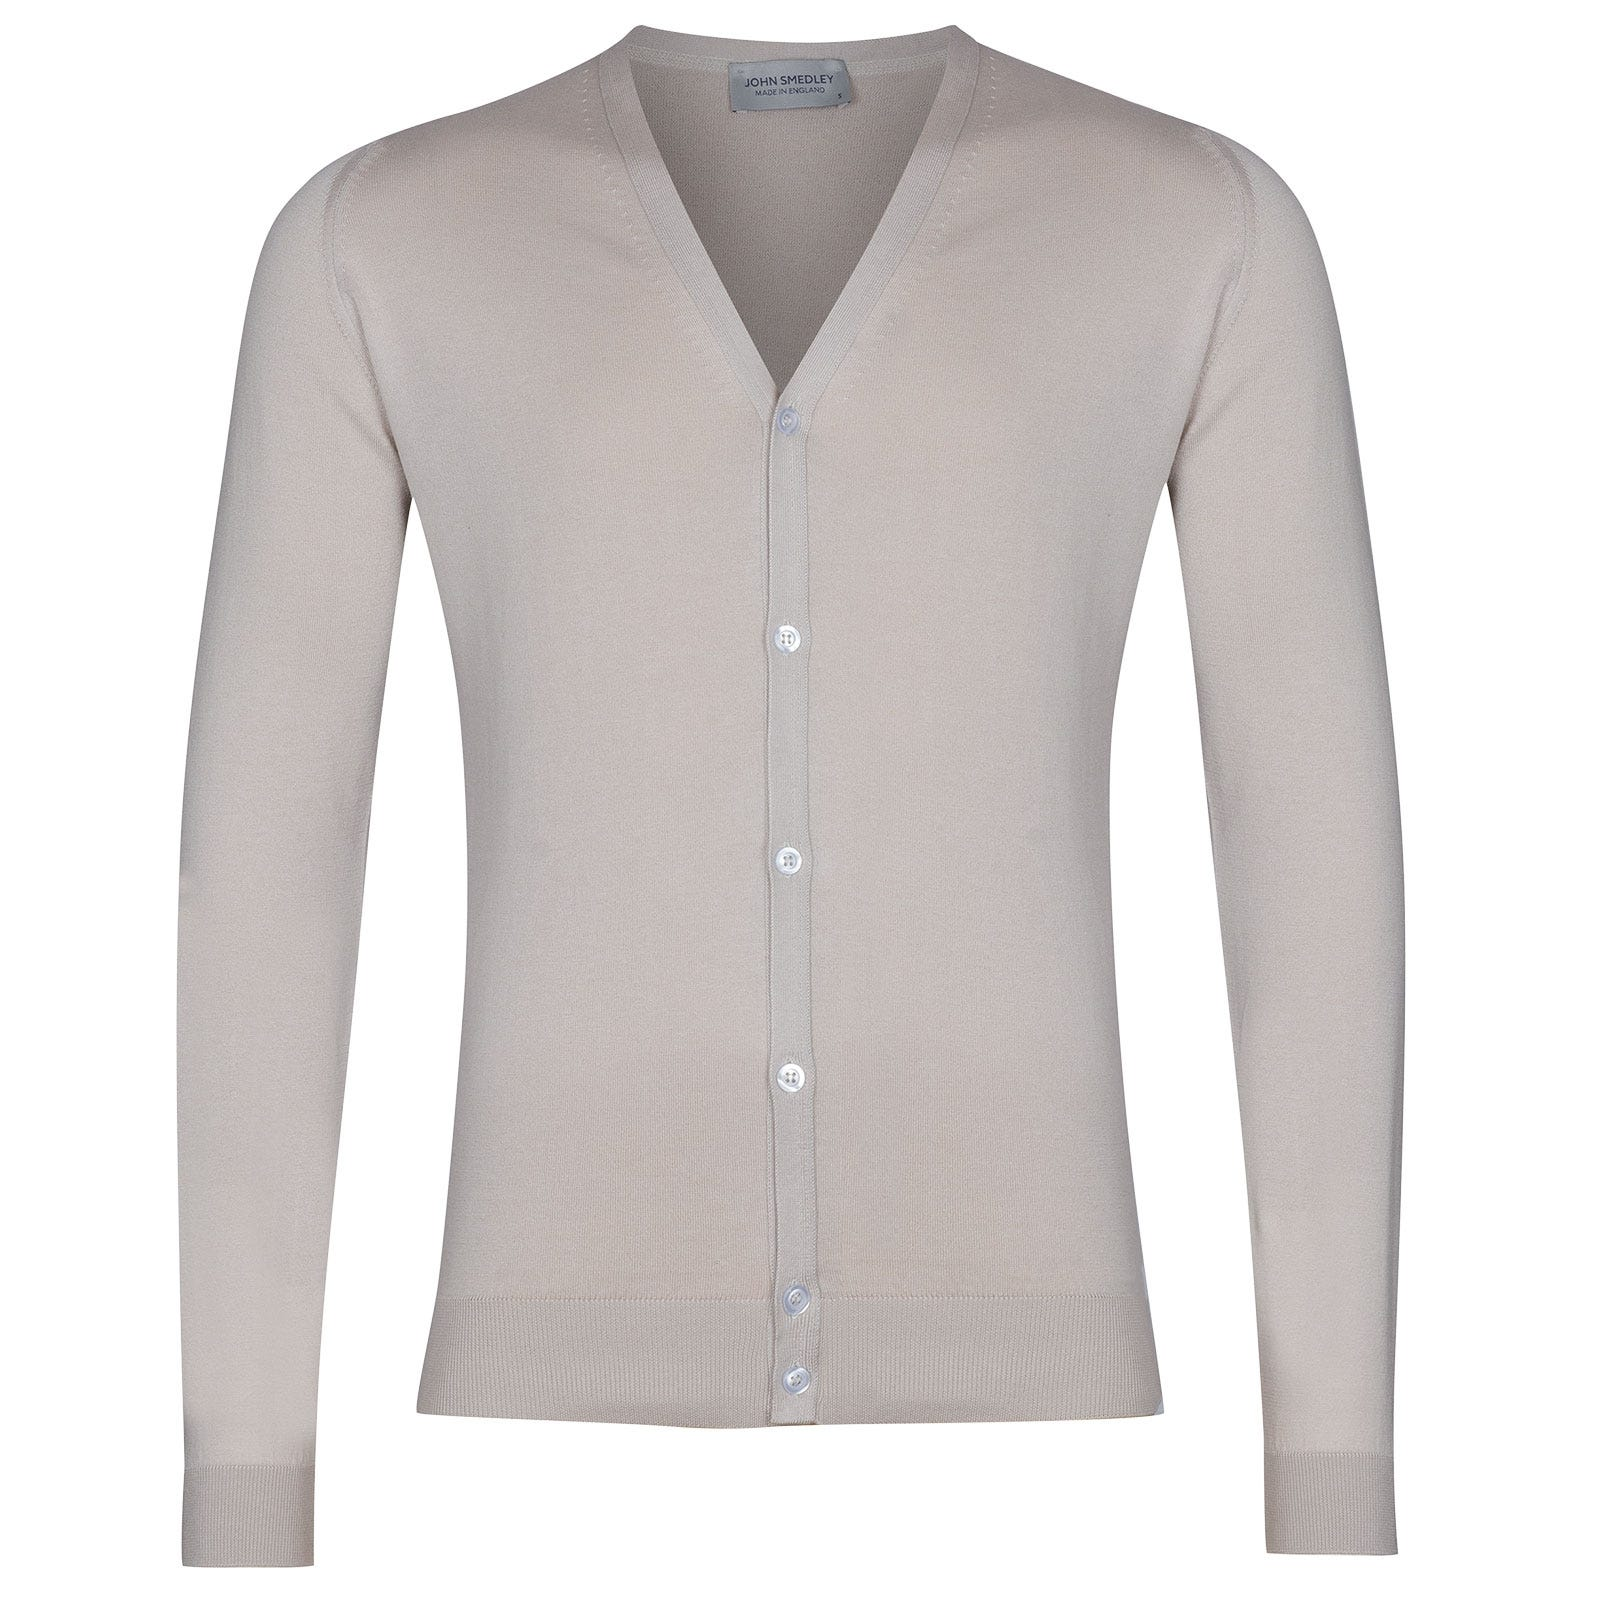 John Smedley Whitchurch in Brunel Beige Cardigan-LGE